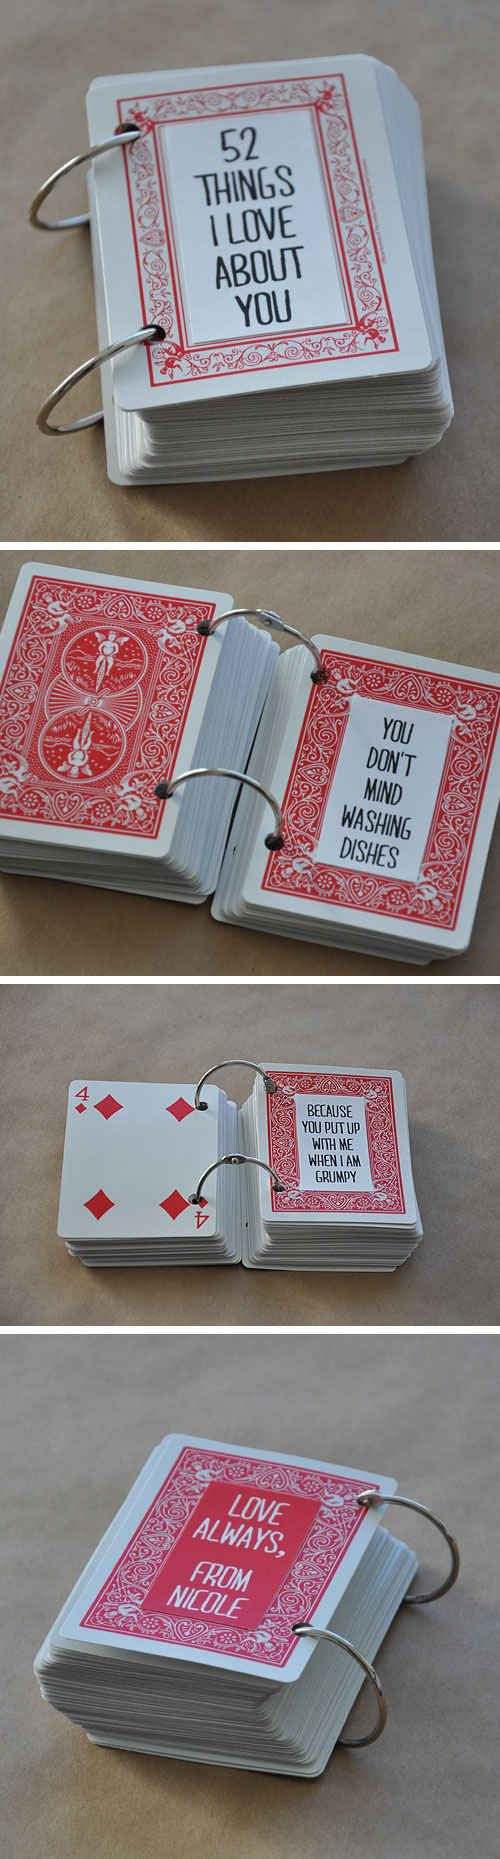 """A Card Deck of """"I Love You's"""" 